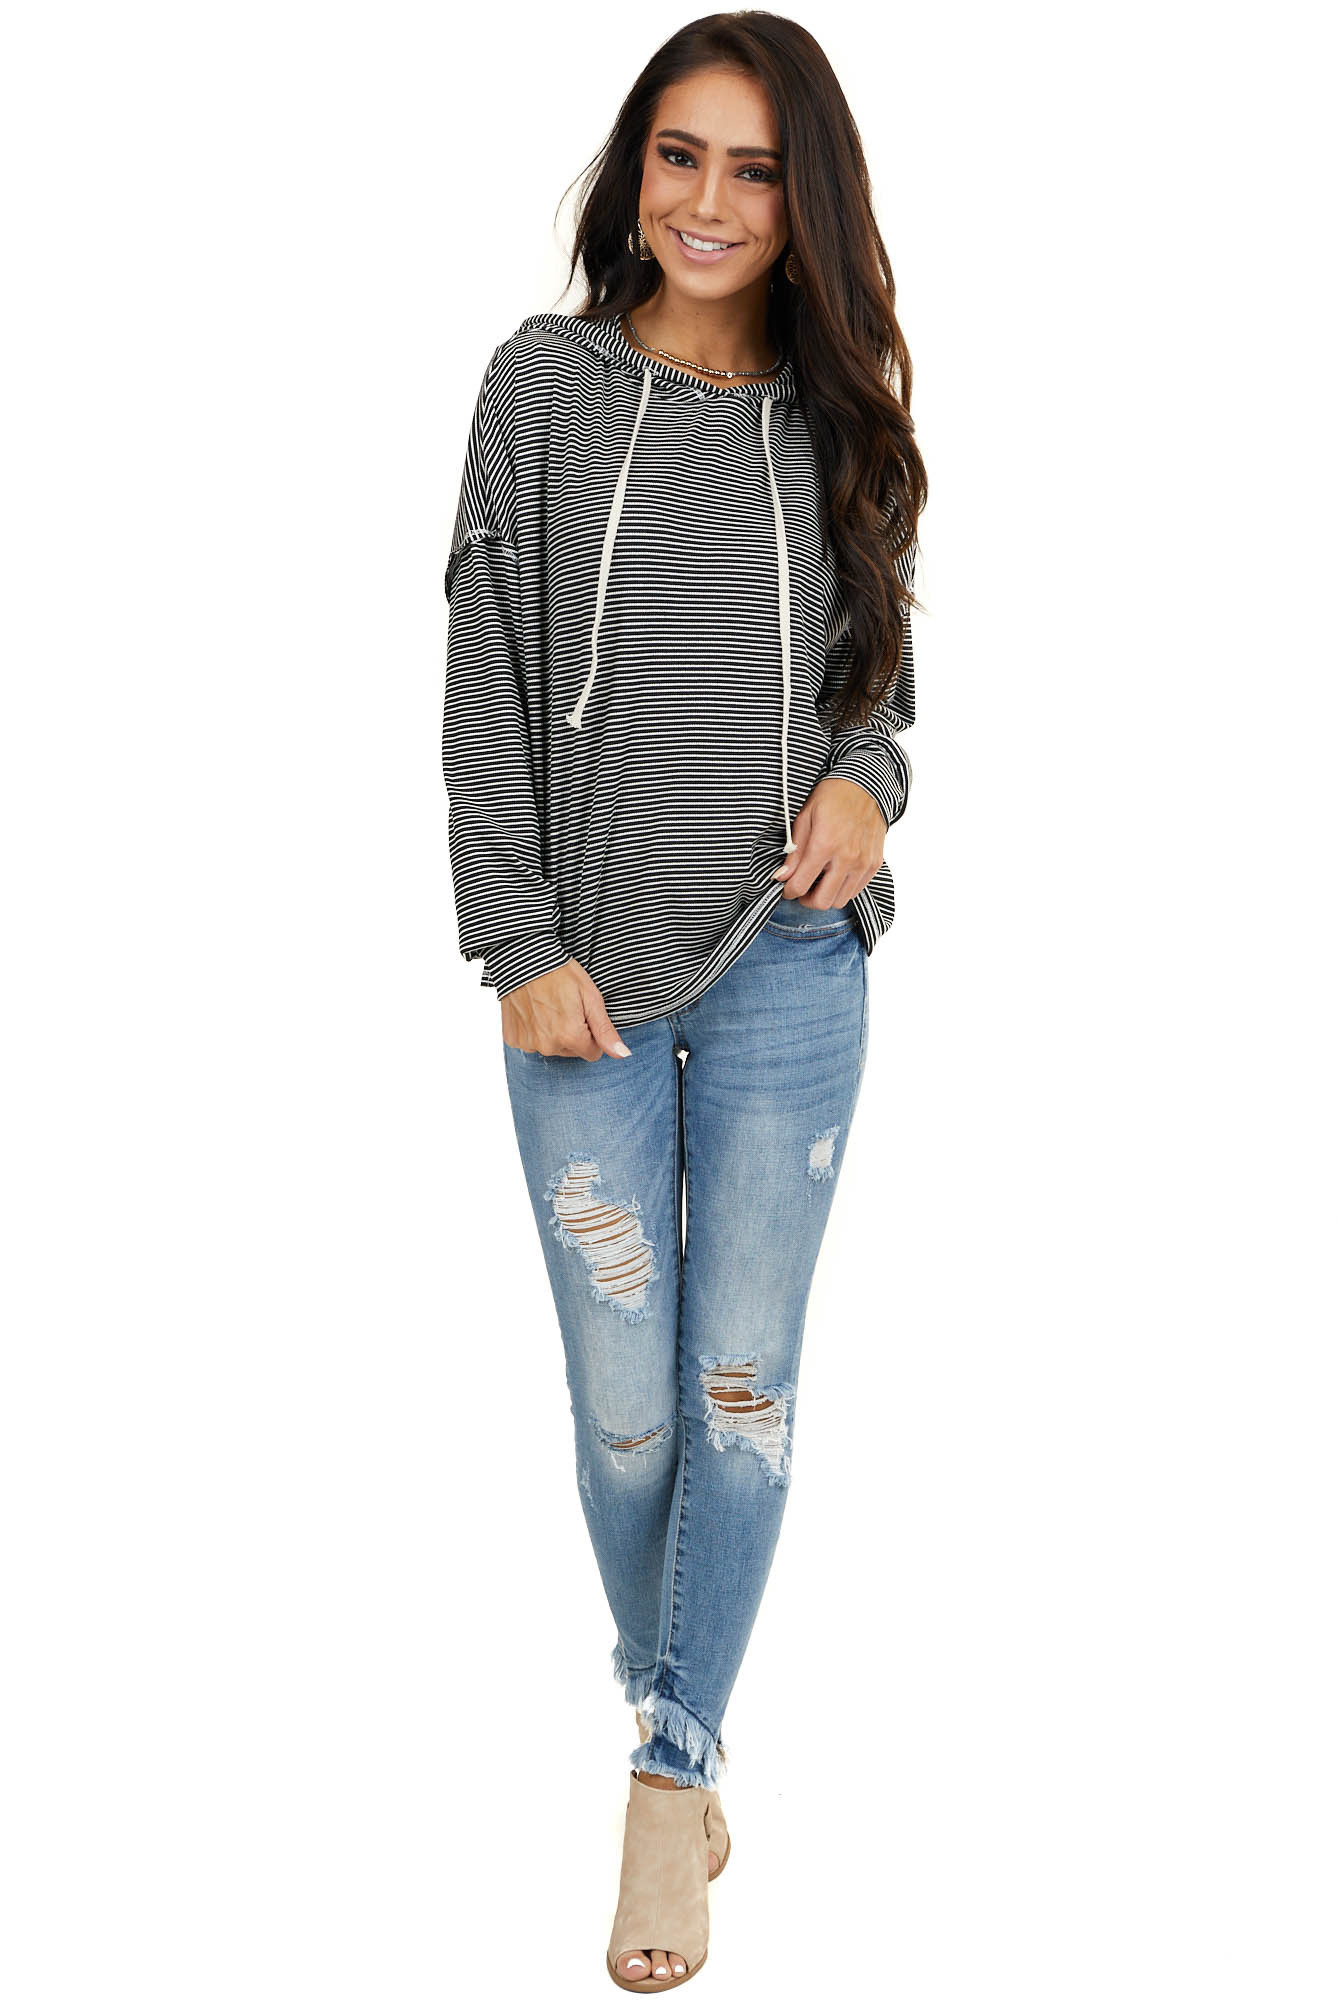 Black and White Striped Top with Hood and Long Sleeves